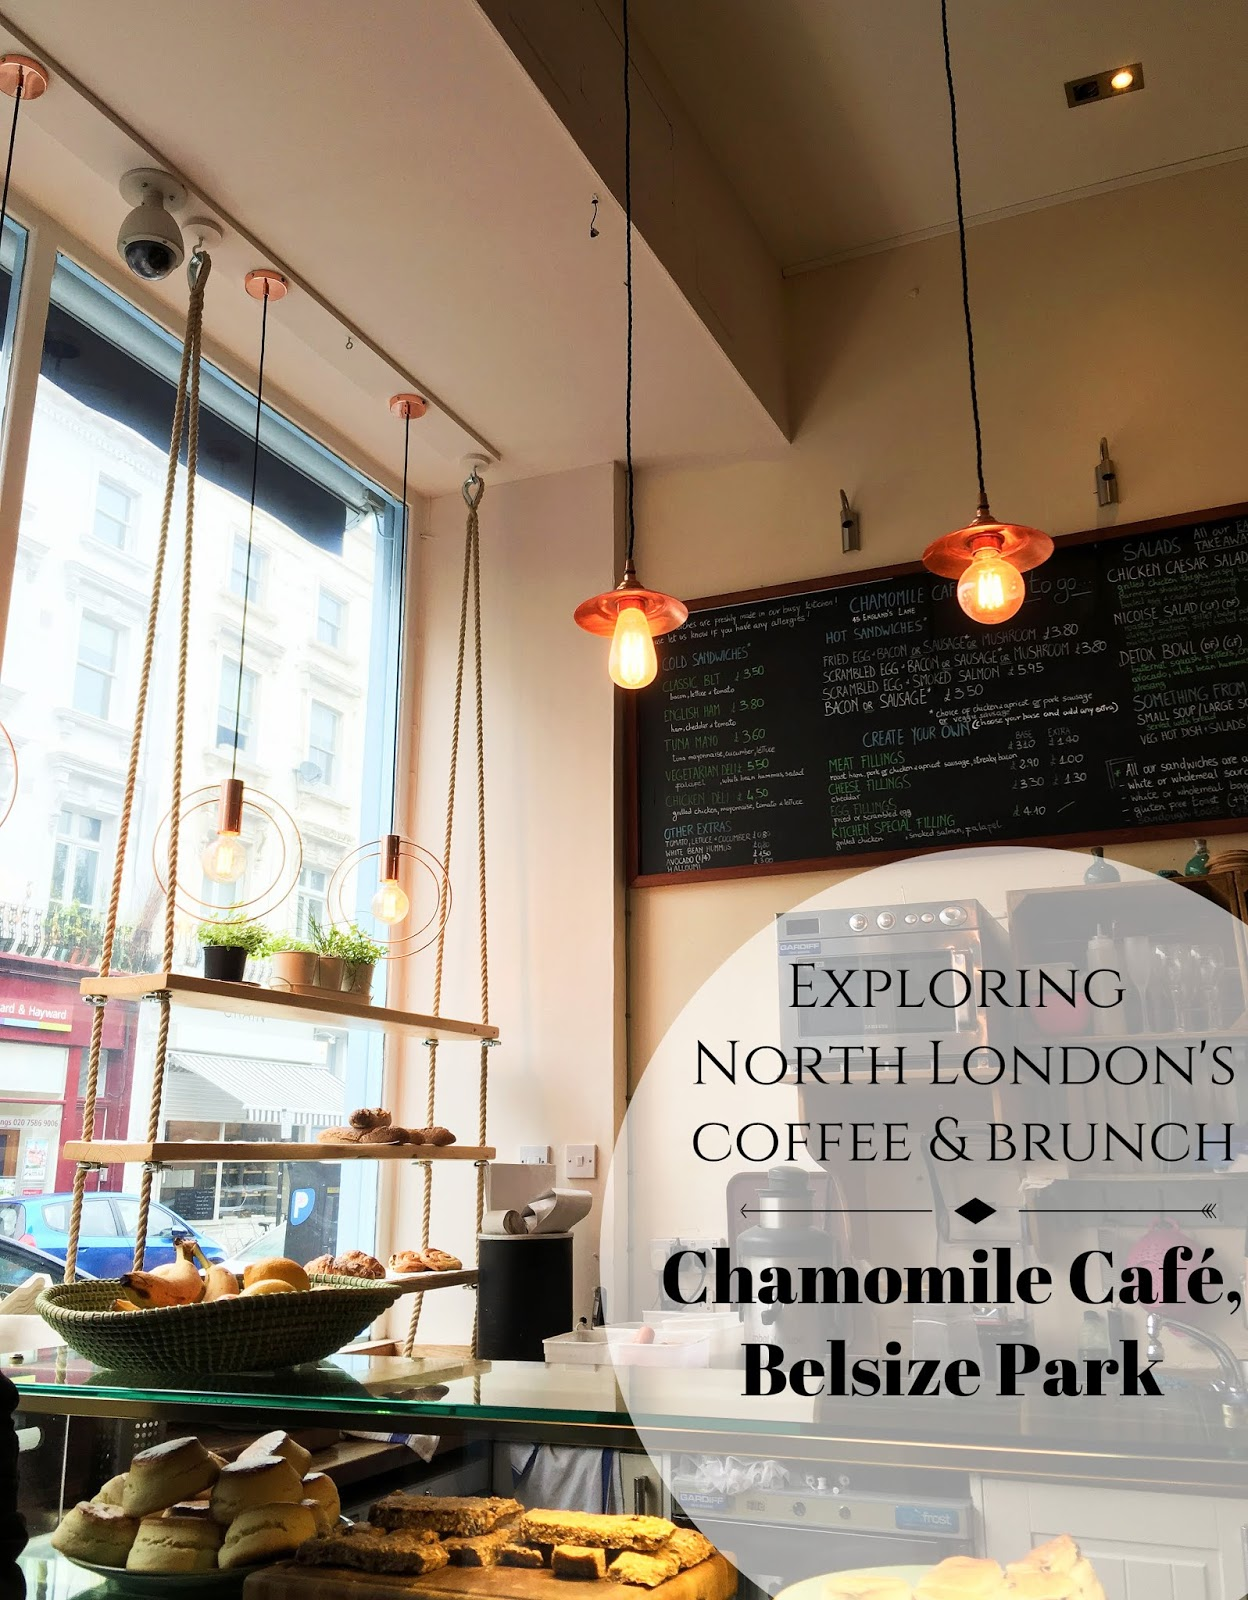 Brunch at Chamomile Cafe, Belsize Park